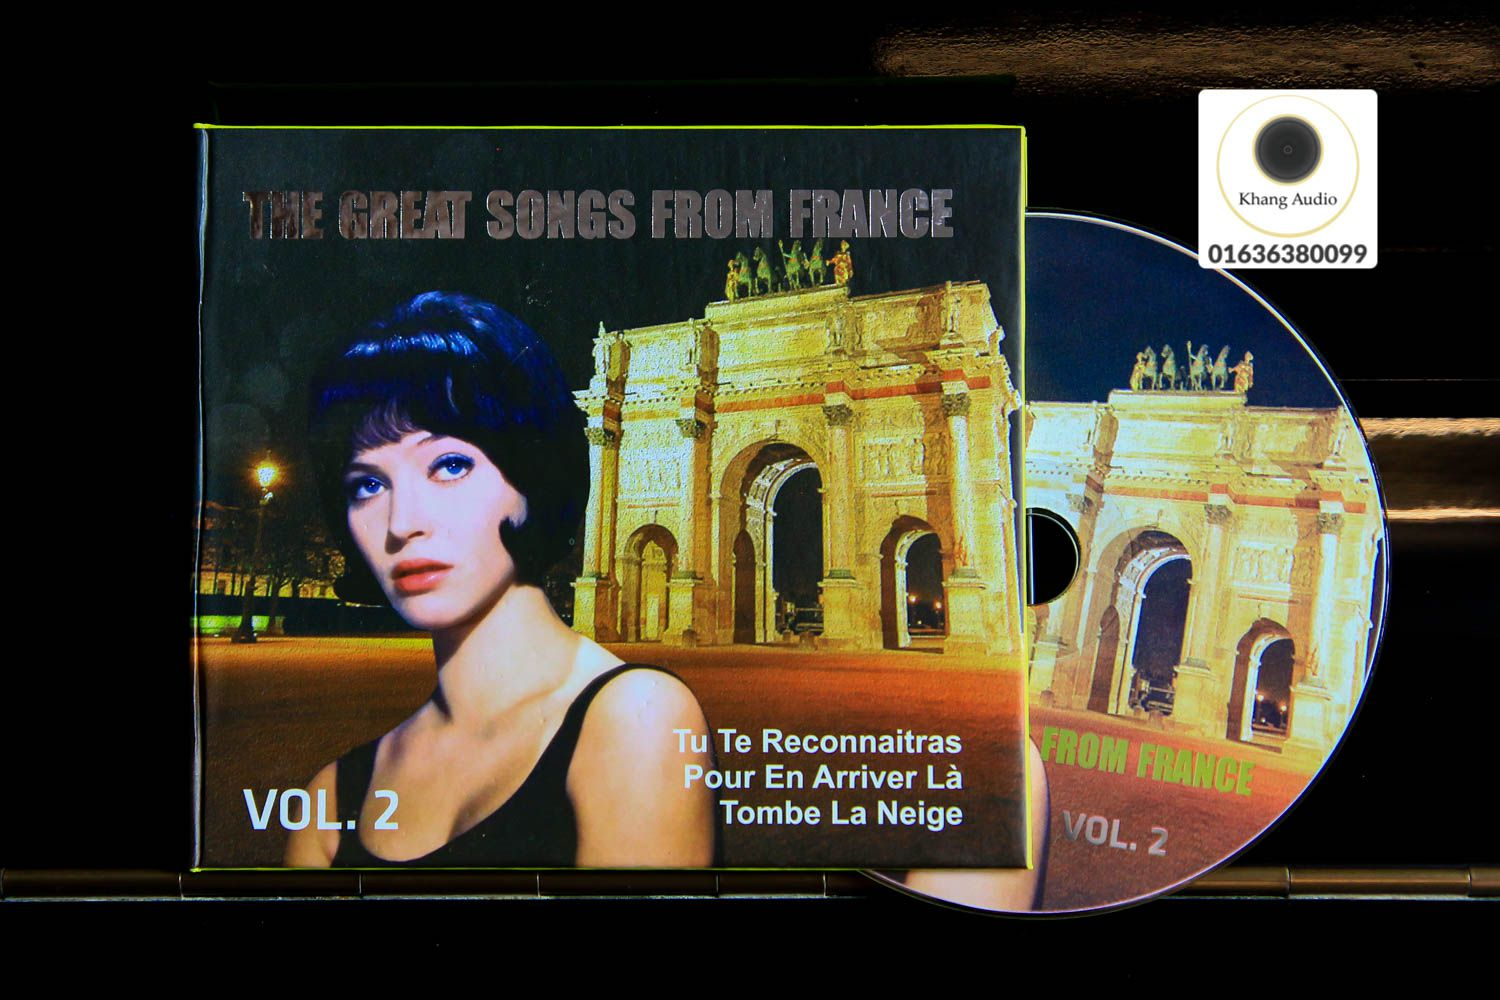 The Greatest Songs From France Vol 2 QT